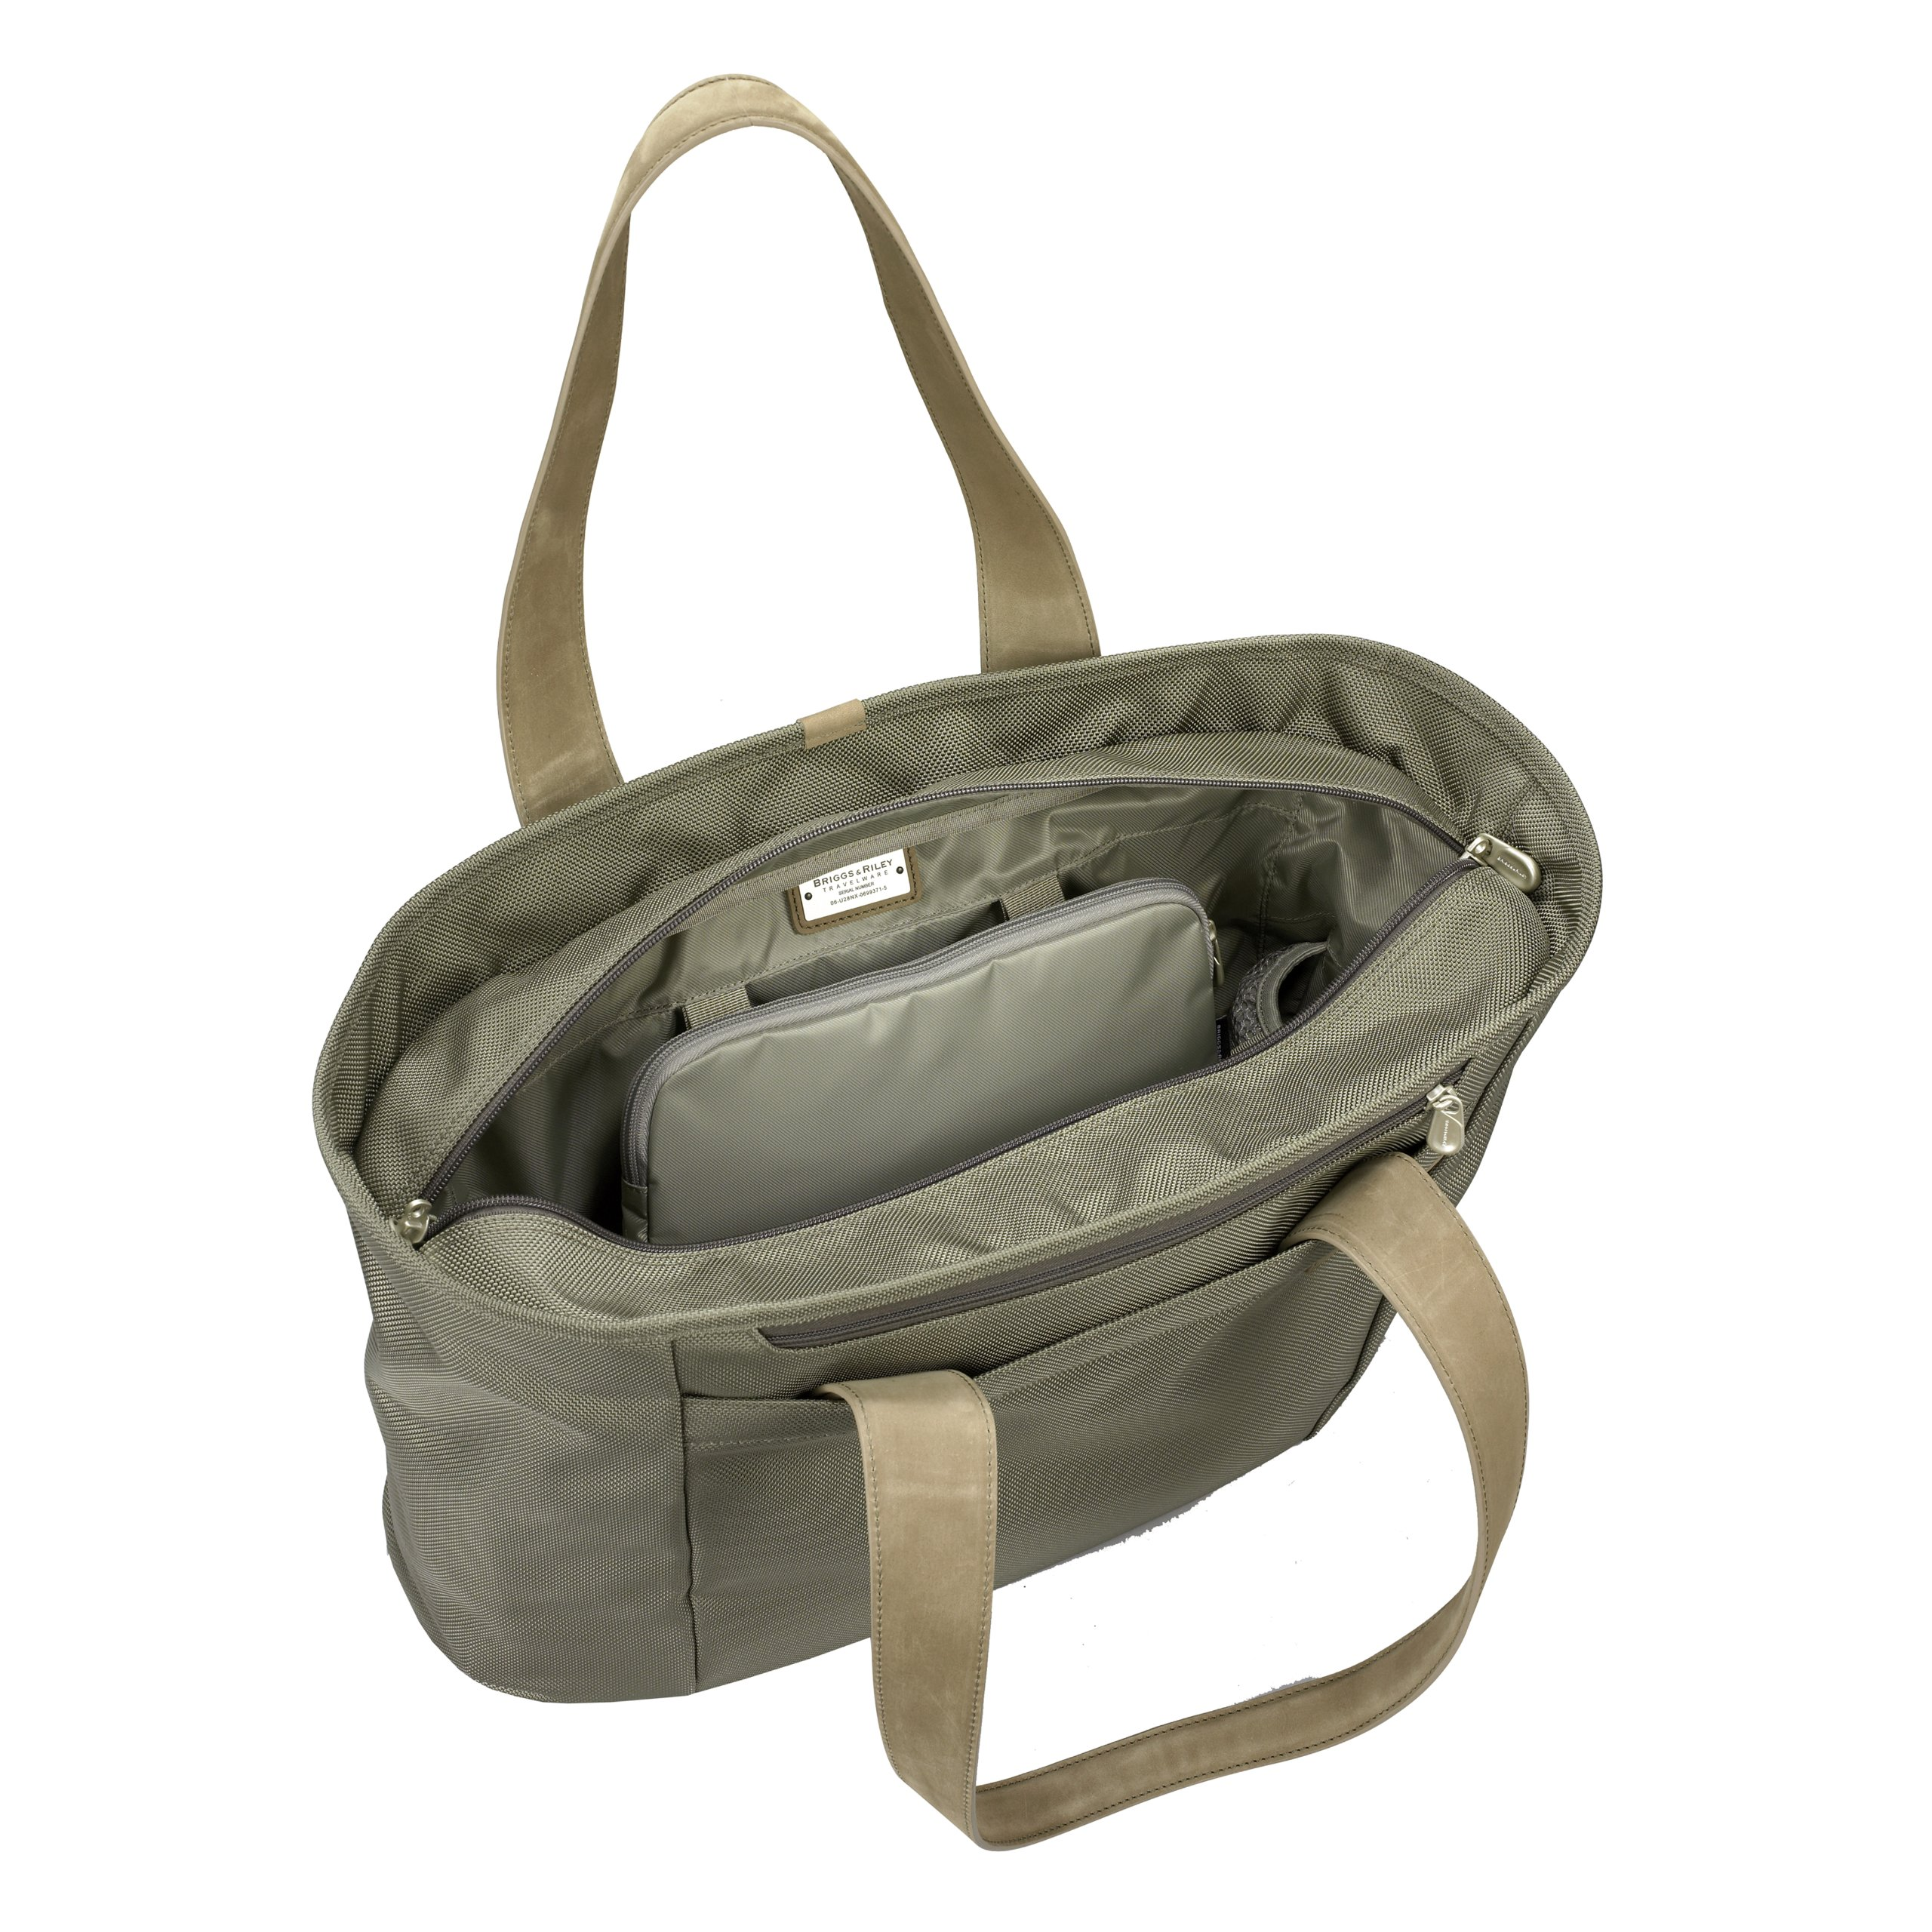 Briggs & Riley Baseline Large Shopping Tote,Olive,13x17x7.3 by Briggs & Riley (Image #3)